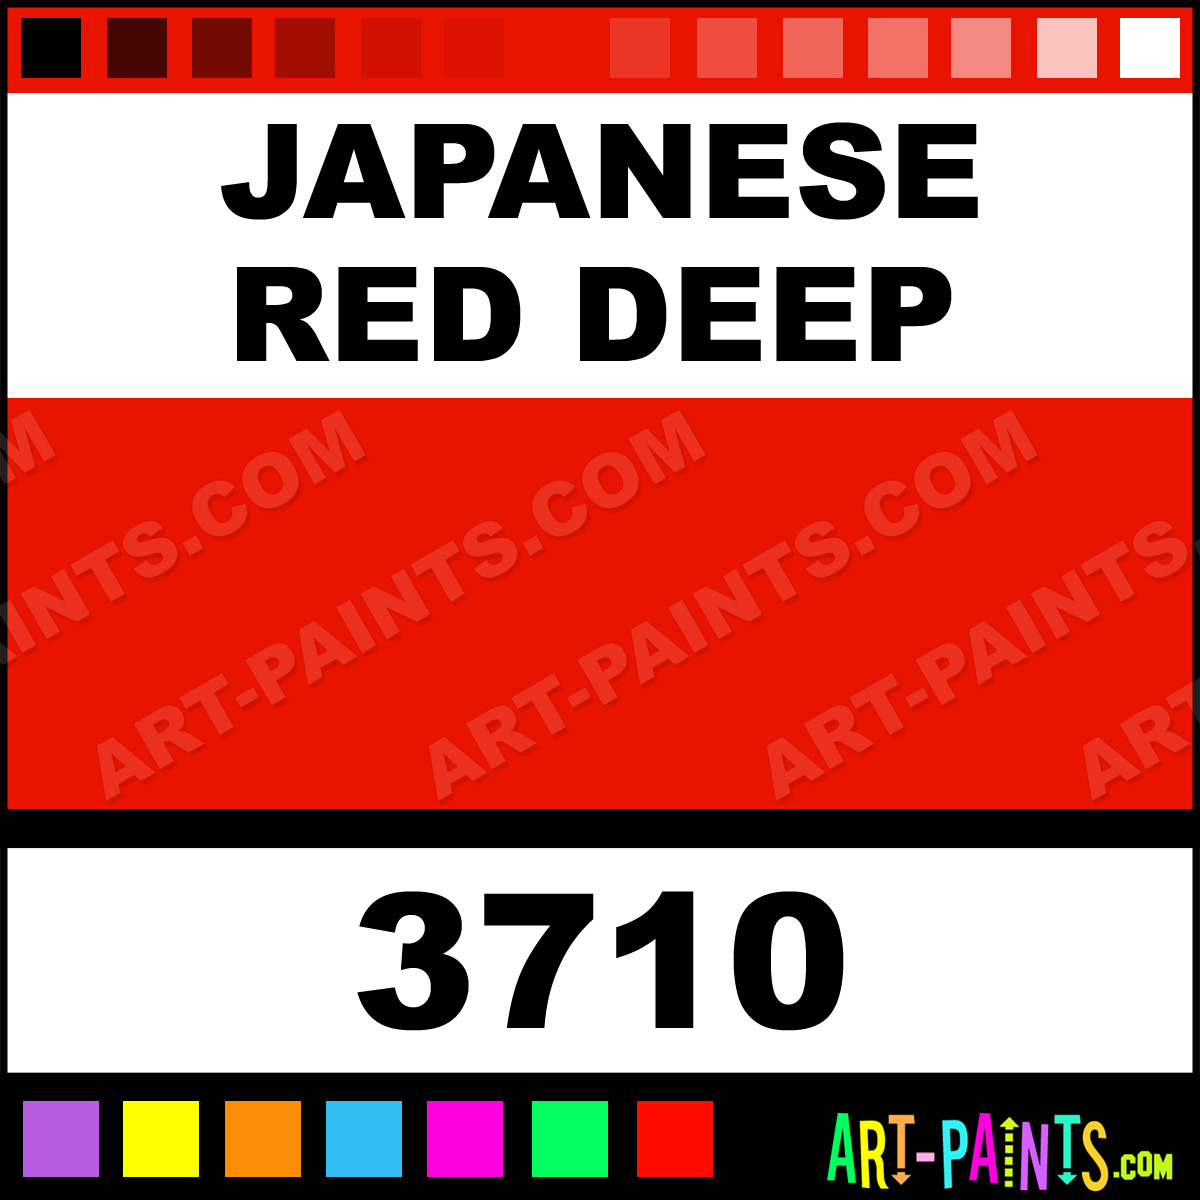 Color in japanese art - Japanese Red